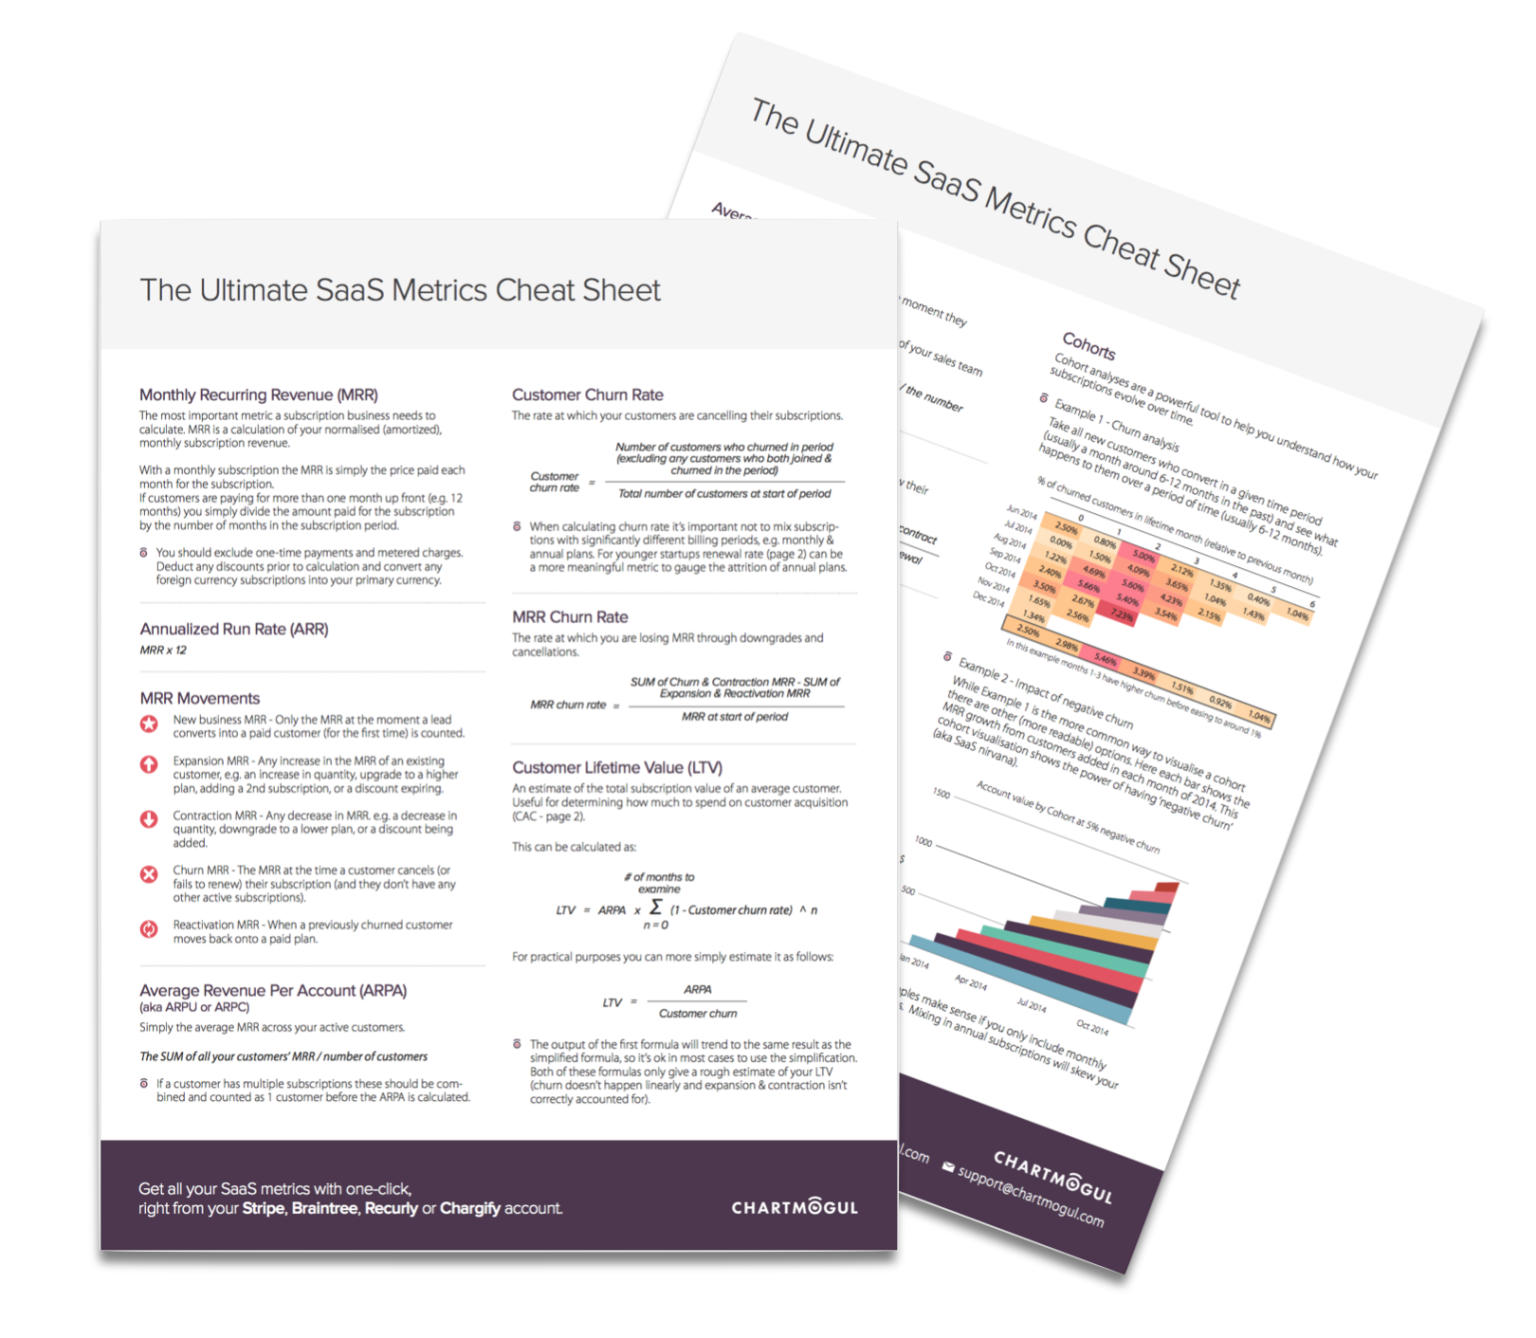 saas metrics cheat sheet